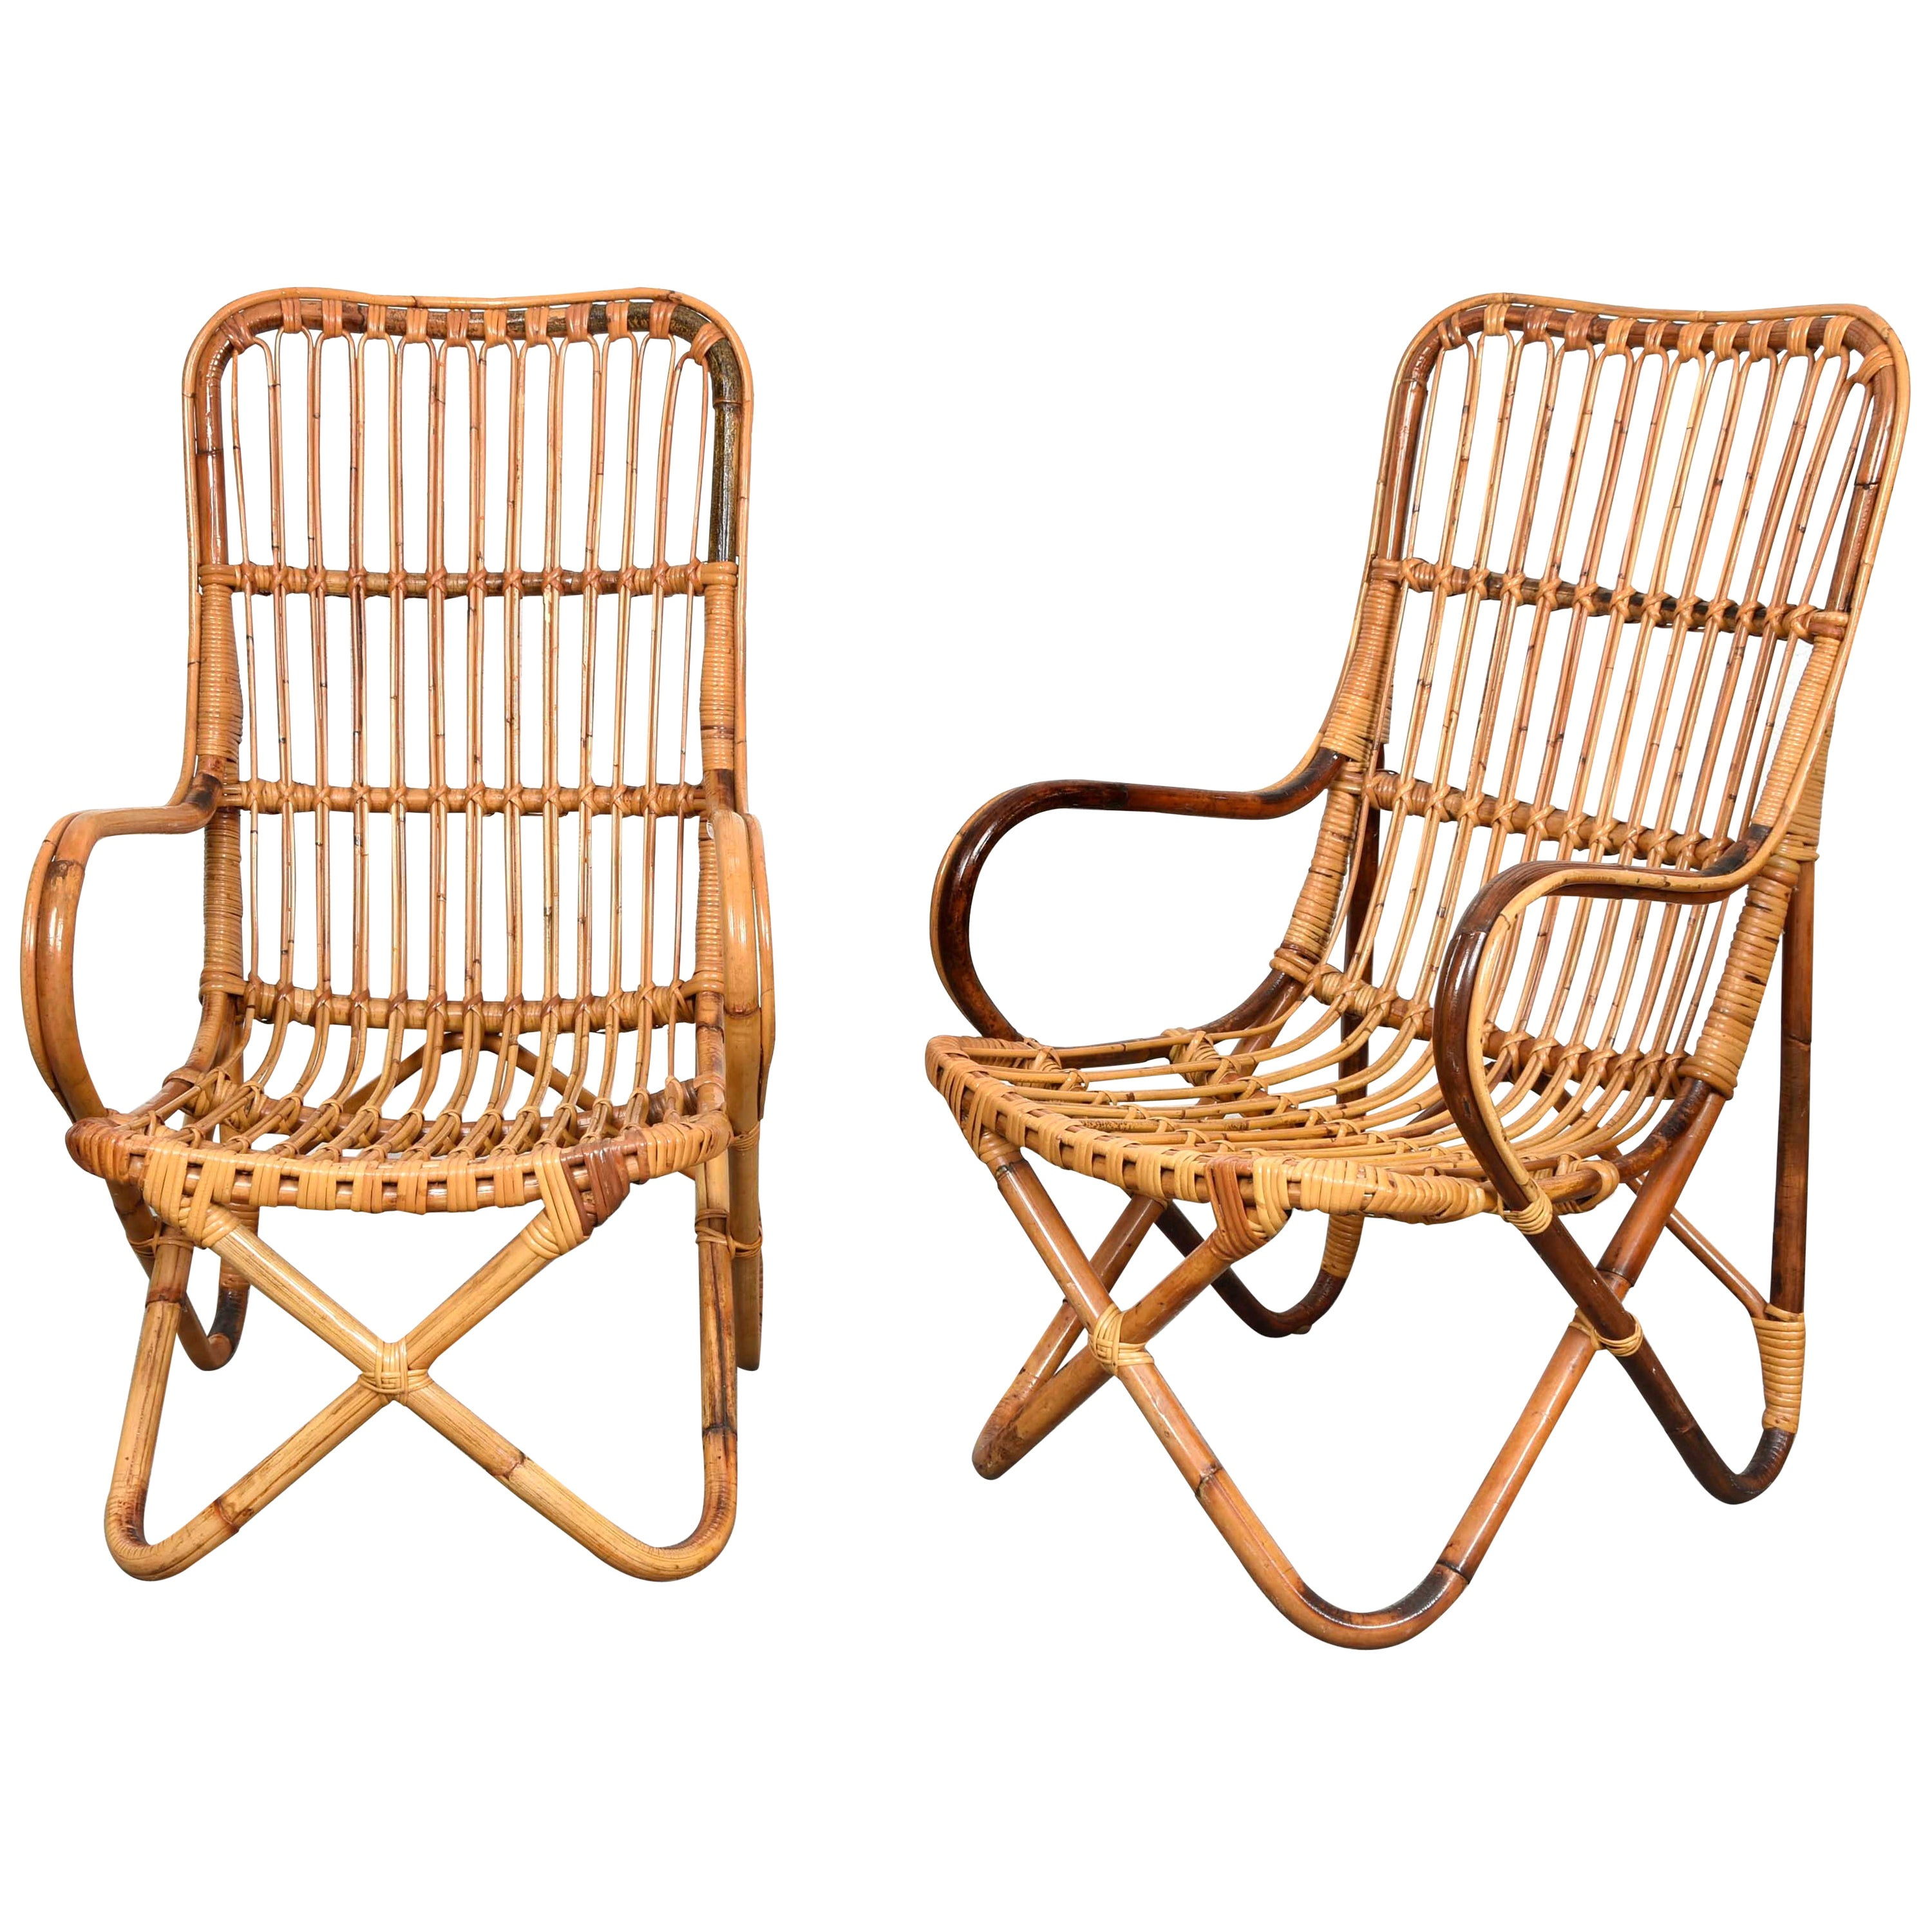 Pair of Midcentury Italian Wicker and Bamboo Armchairs after Tito Agnoli, 1960s